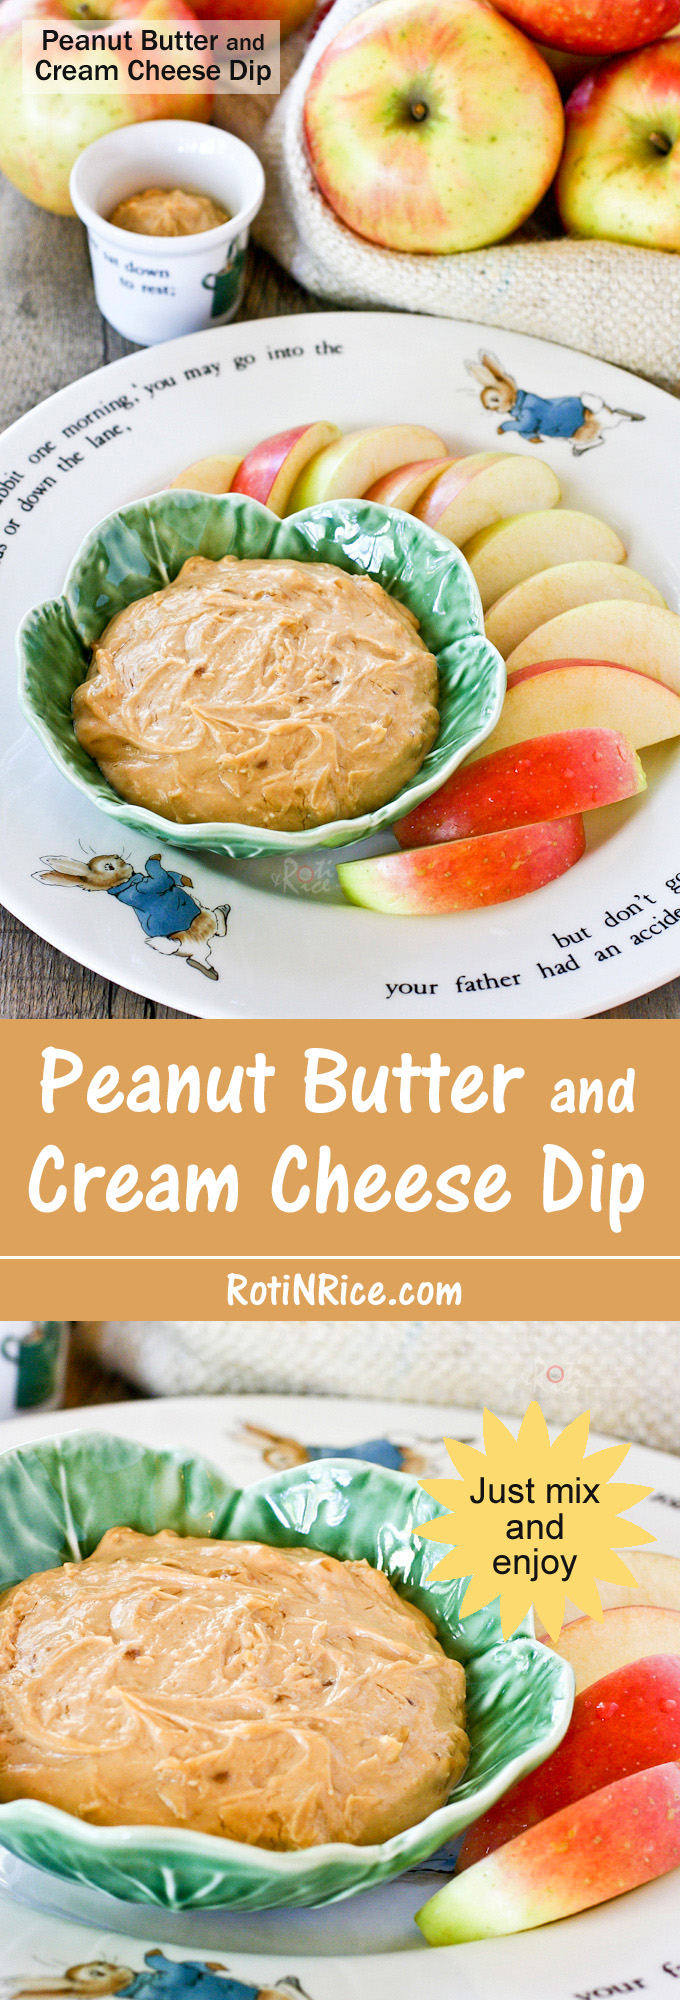 Quick and easy Peanut Butter and Cream Cheese Dip with a sweet salty combination perfect with crunchy fruits, vegetables, and pretzels. Only minutes to prepare. | RotiNRice.com